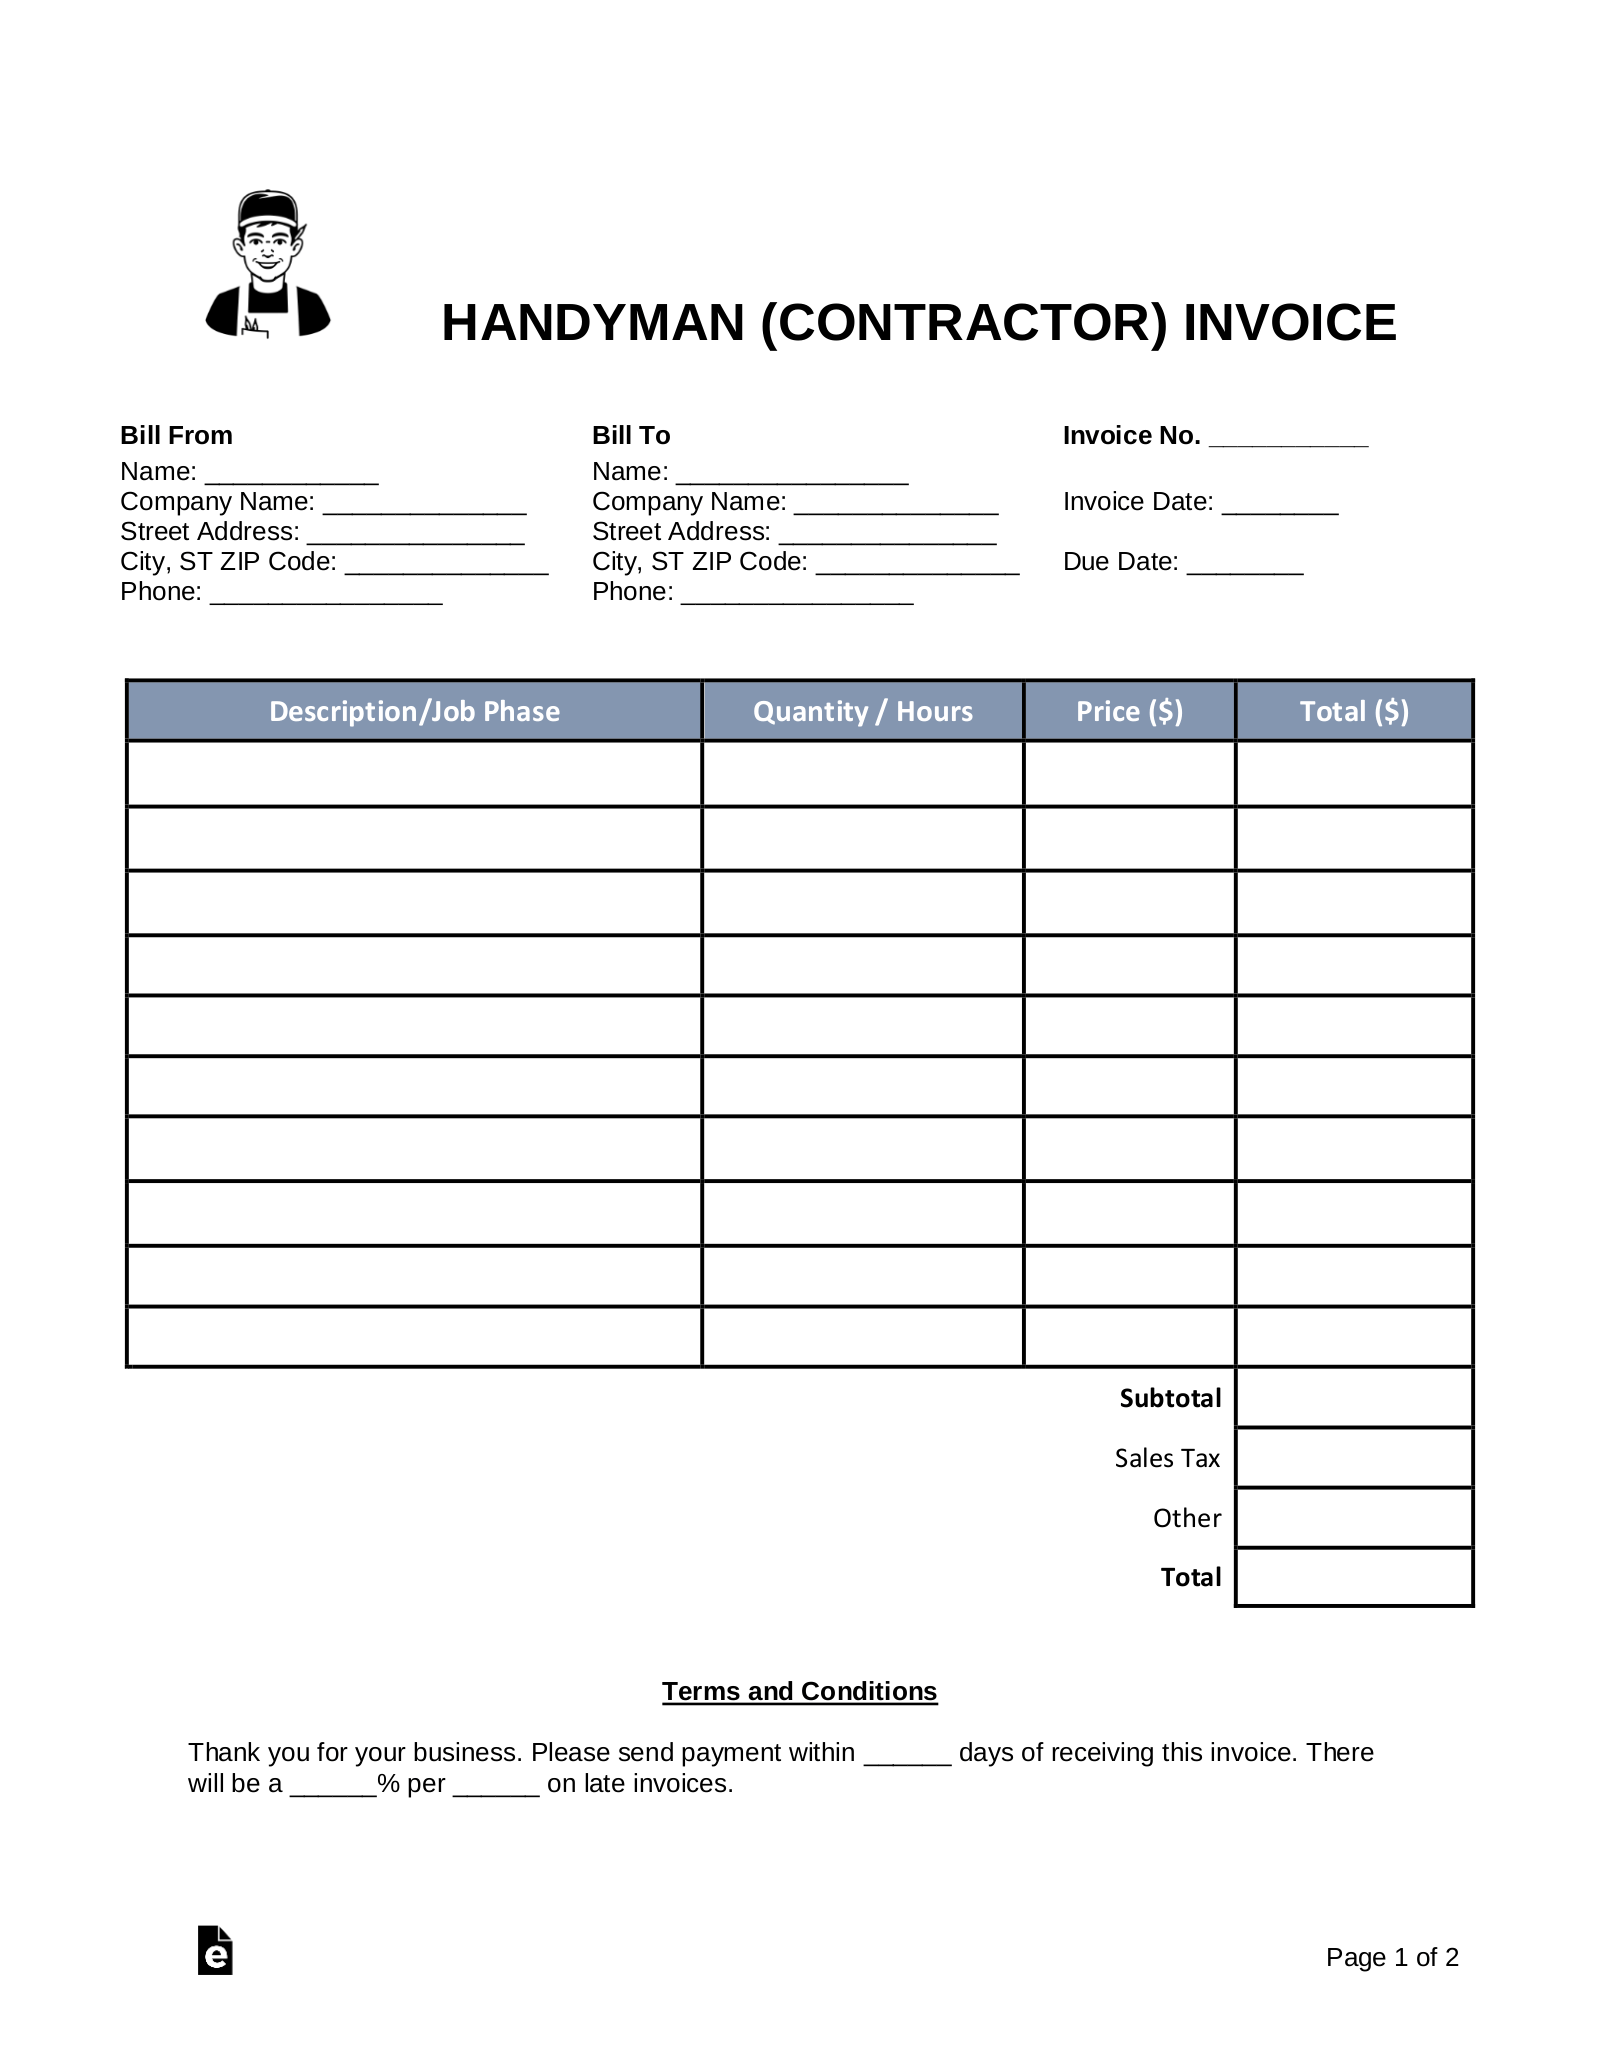 Free Handyman Contractor Invoice Template